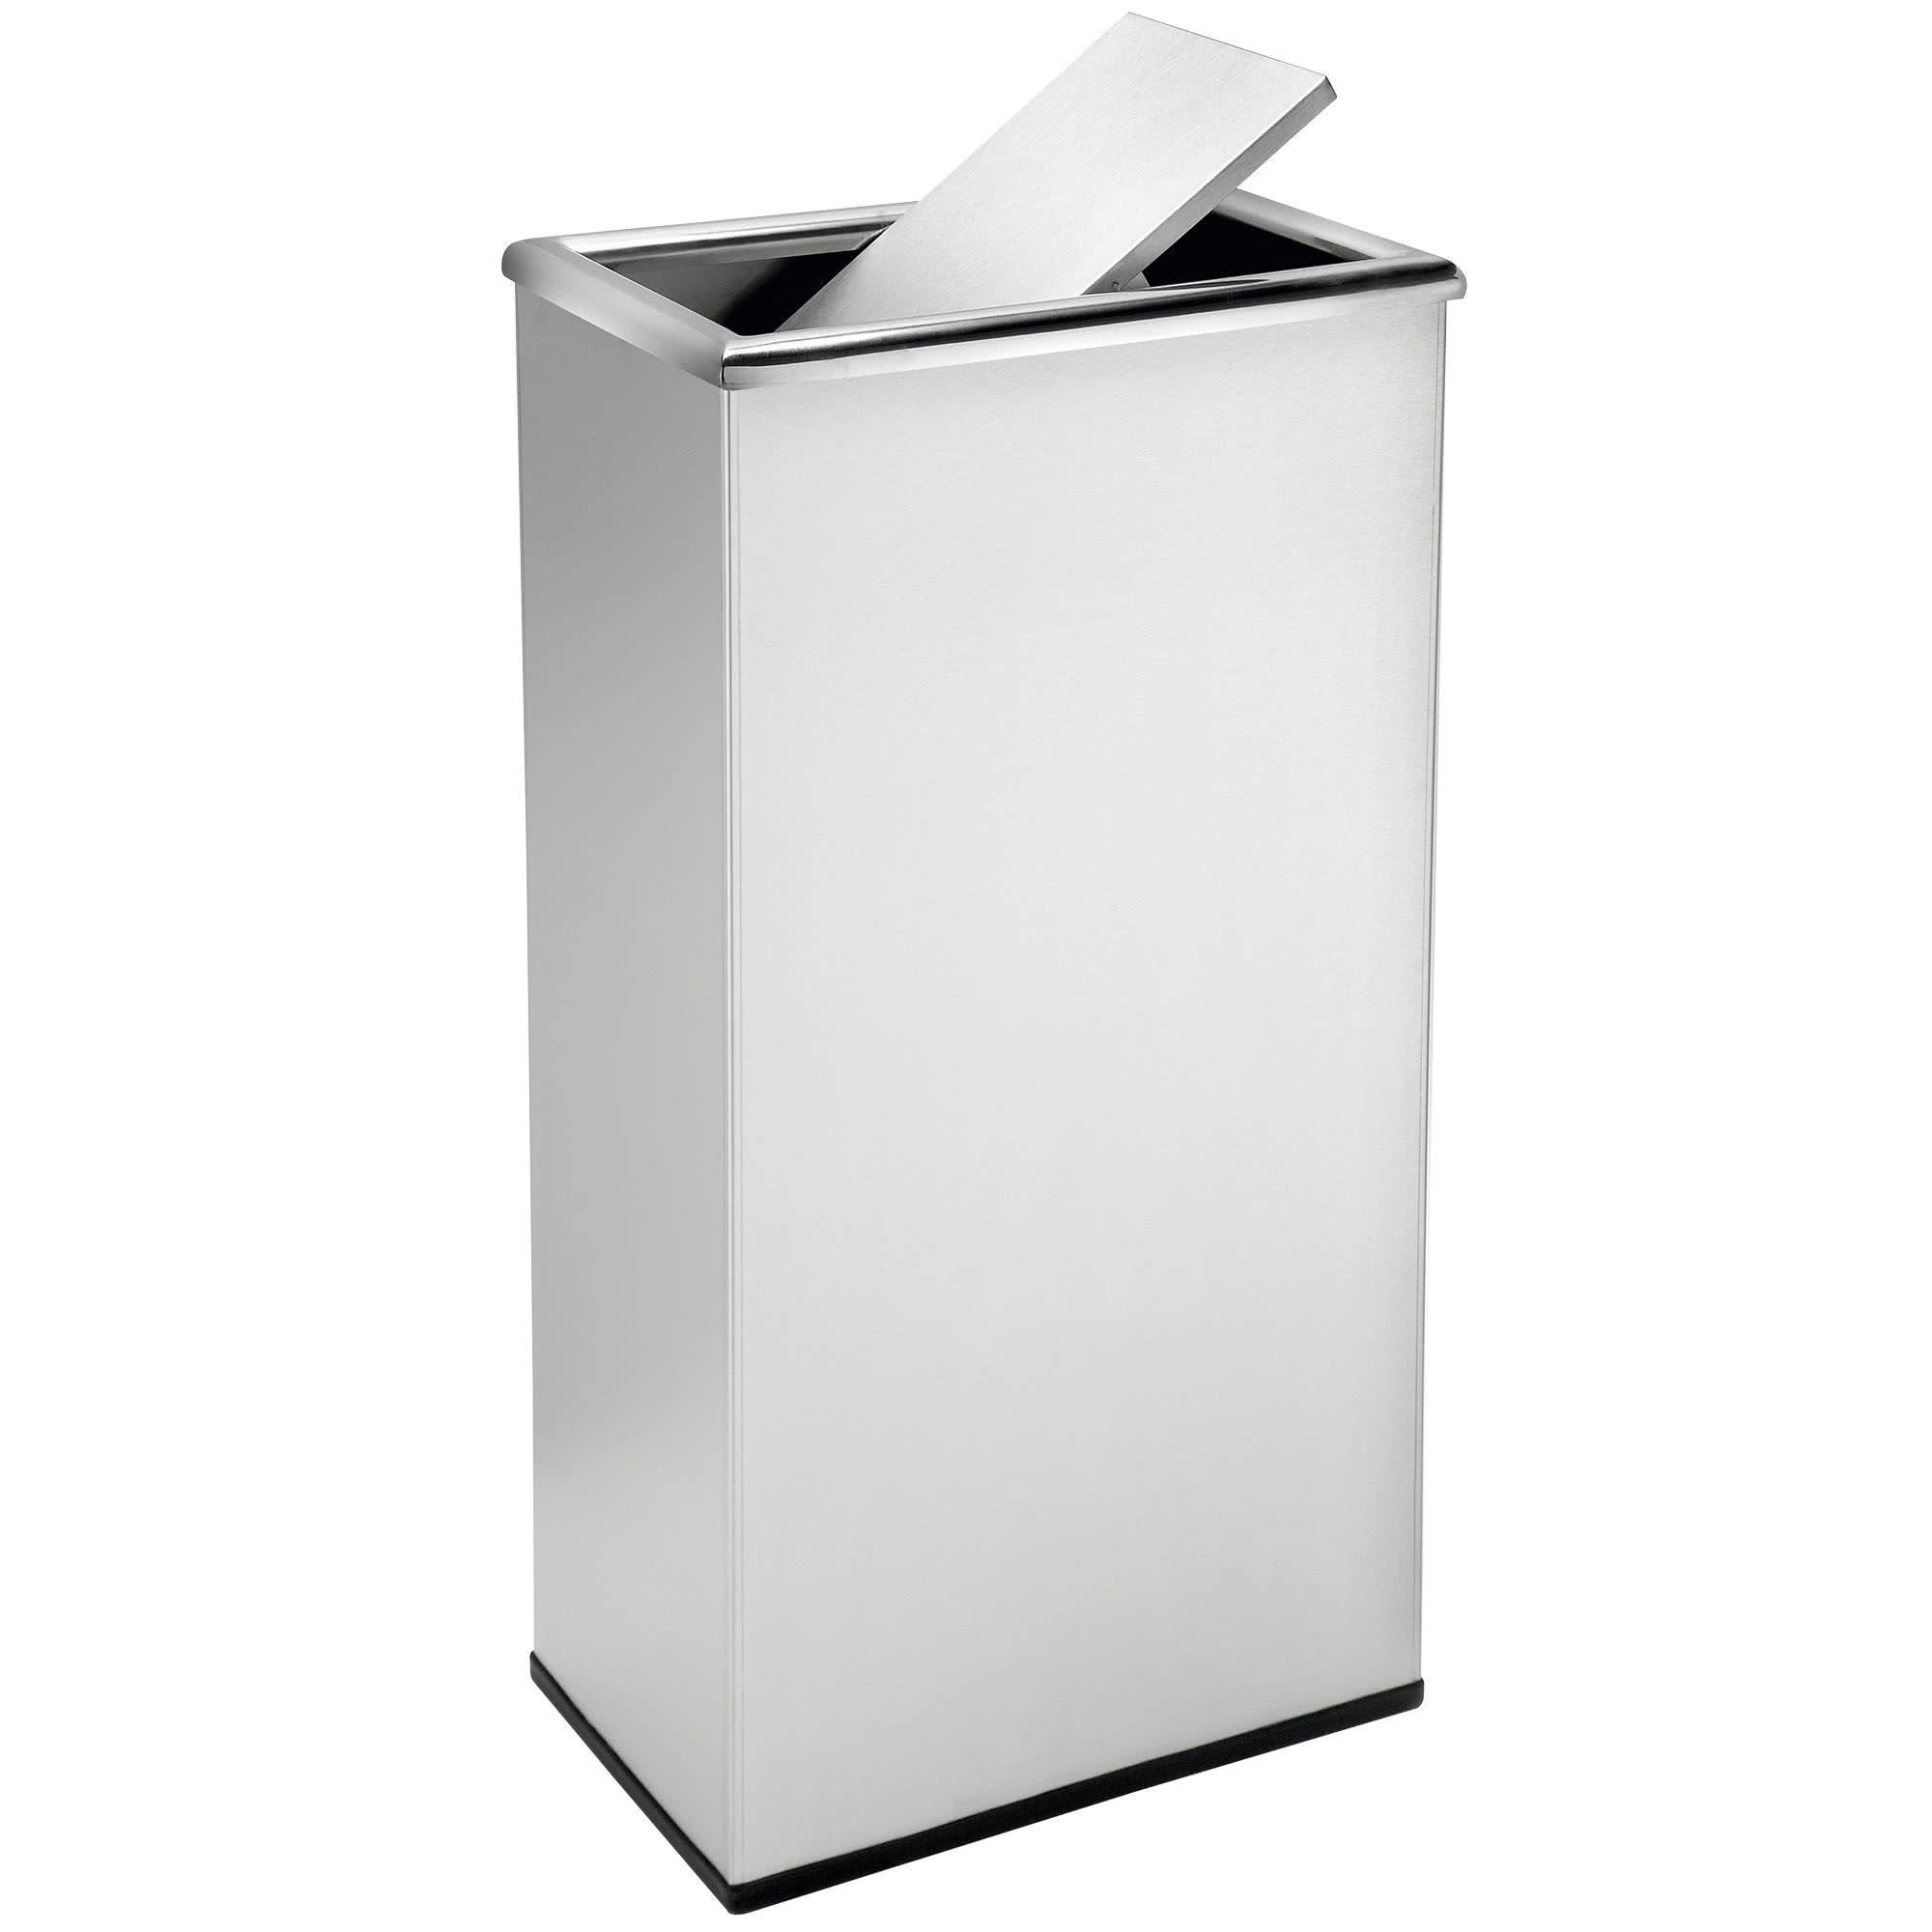 The Best Trash Cans According To Experts Chicago Tribune